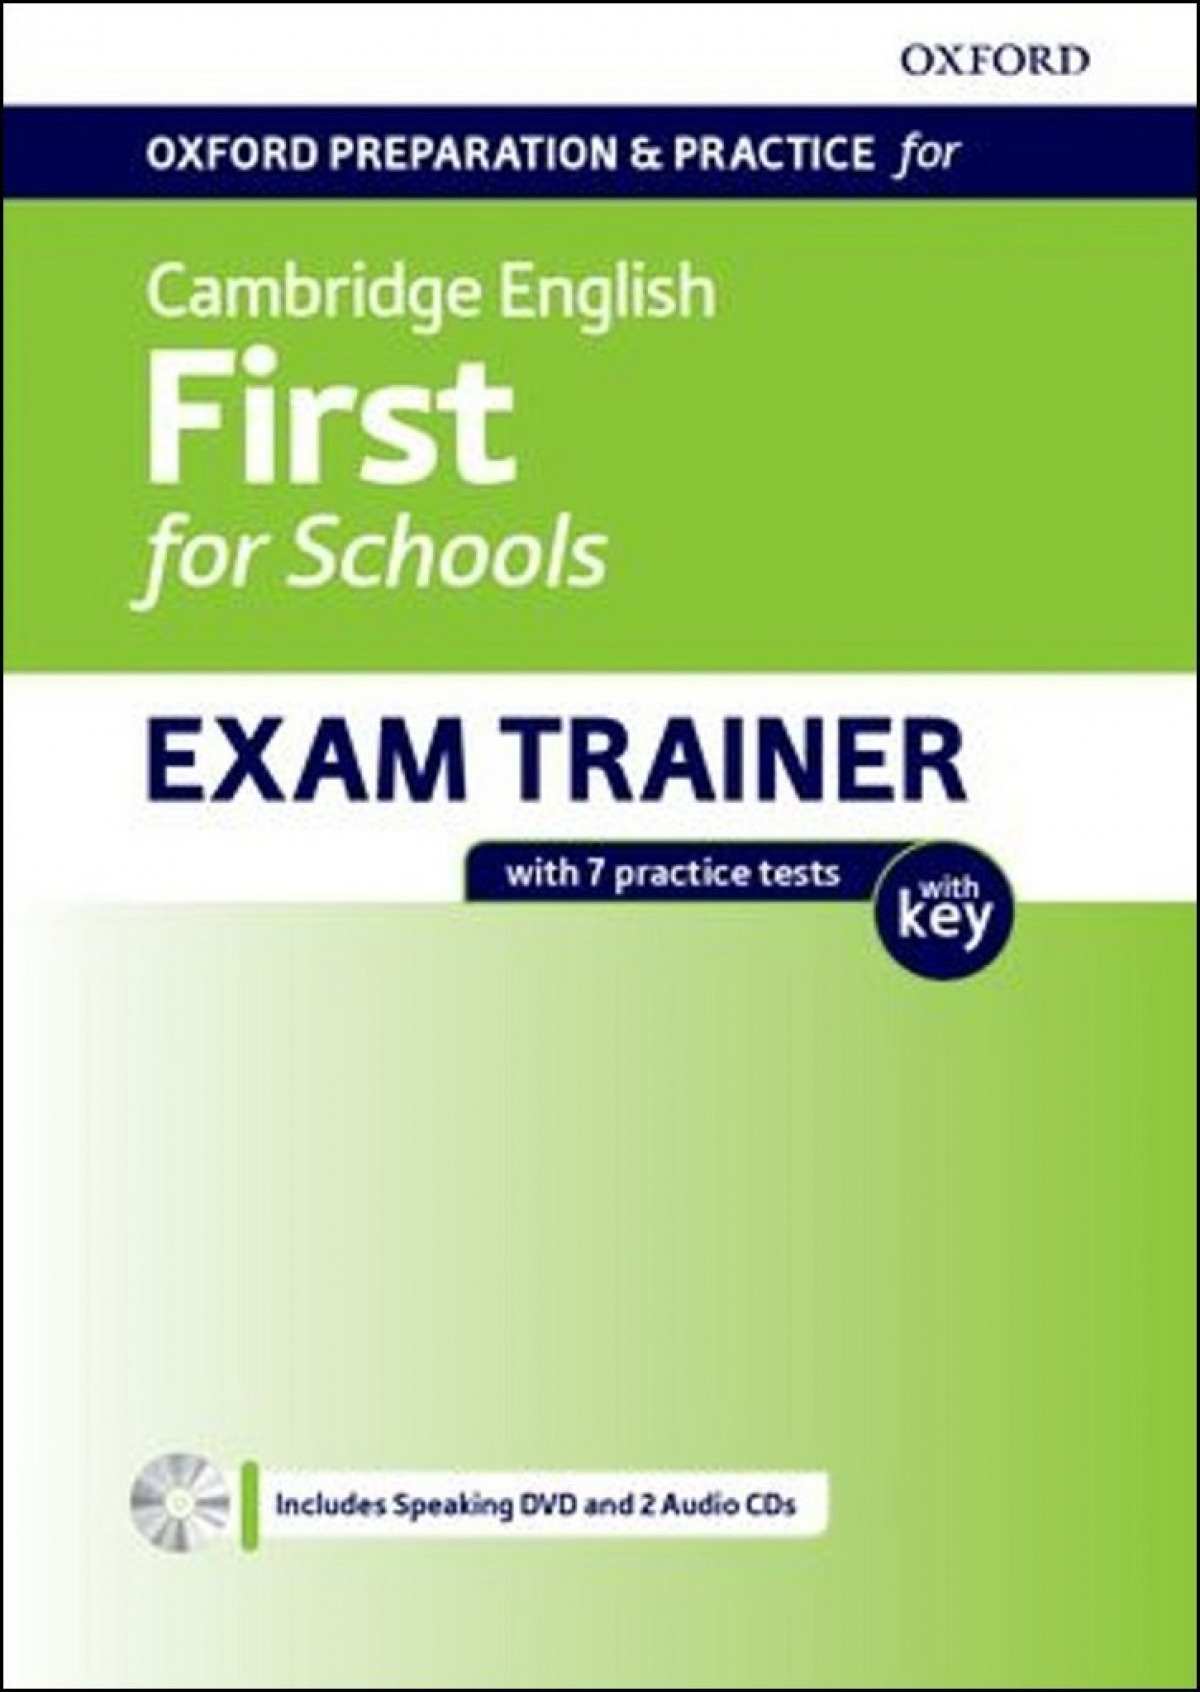 (17).(ST+KEY).ENG.FIRST FOR SCHOOLS EXAM TRAINER (OX.PREP)